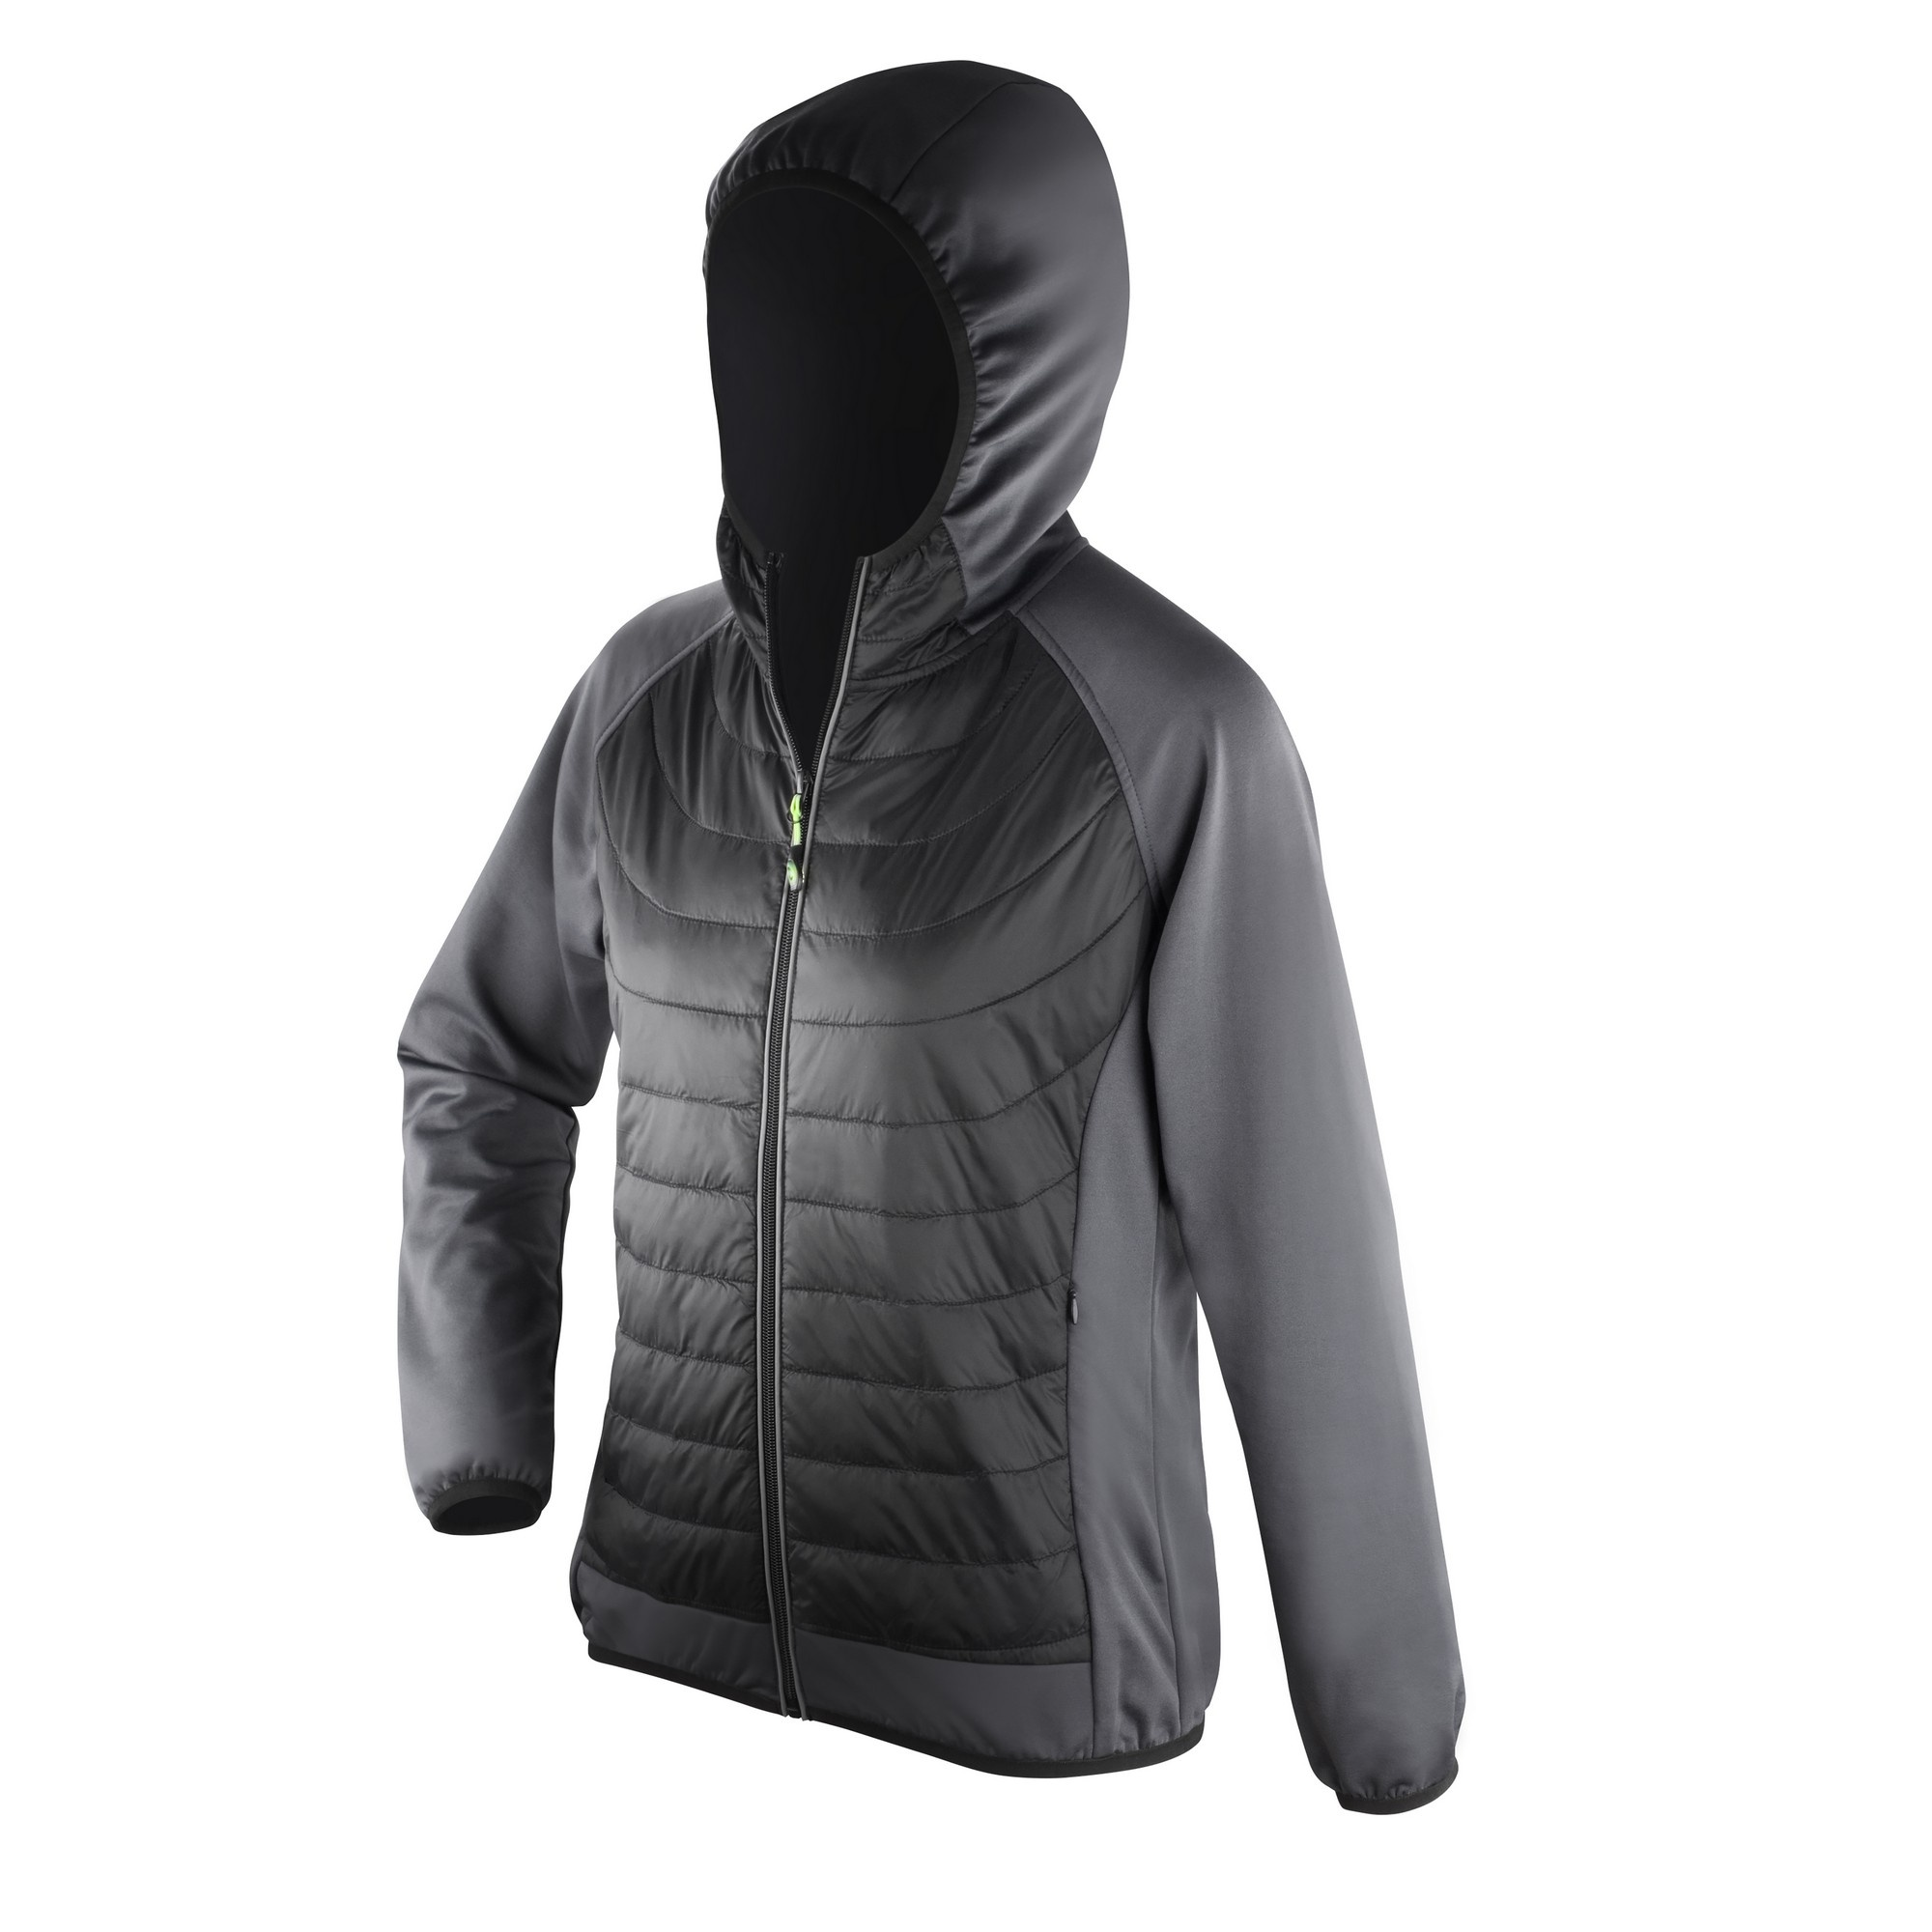 Spiro Womens/Ladies Zero Gravity Showerproof Jacket (M) (Black/Charcoal)